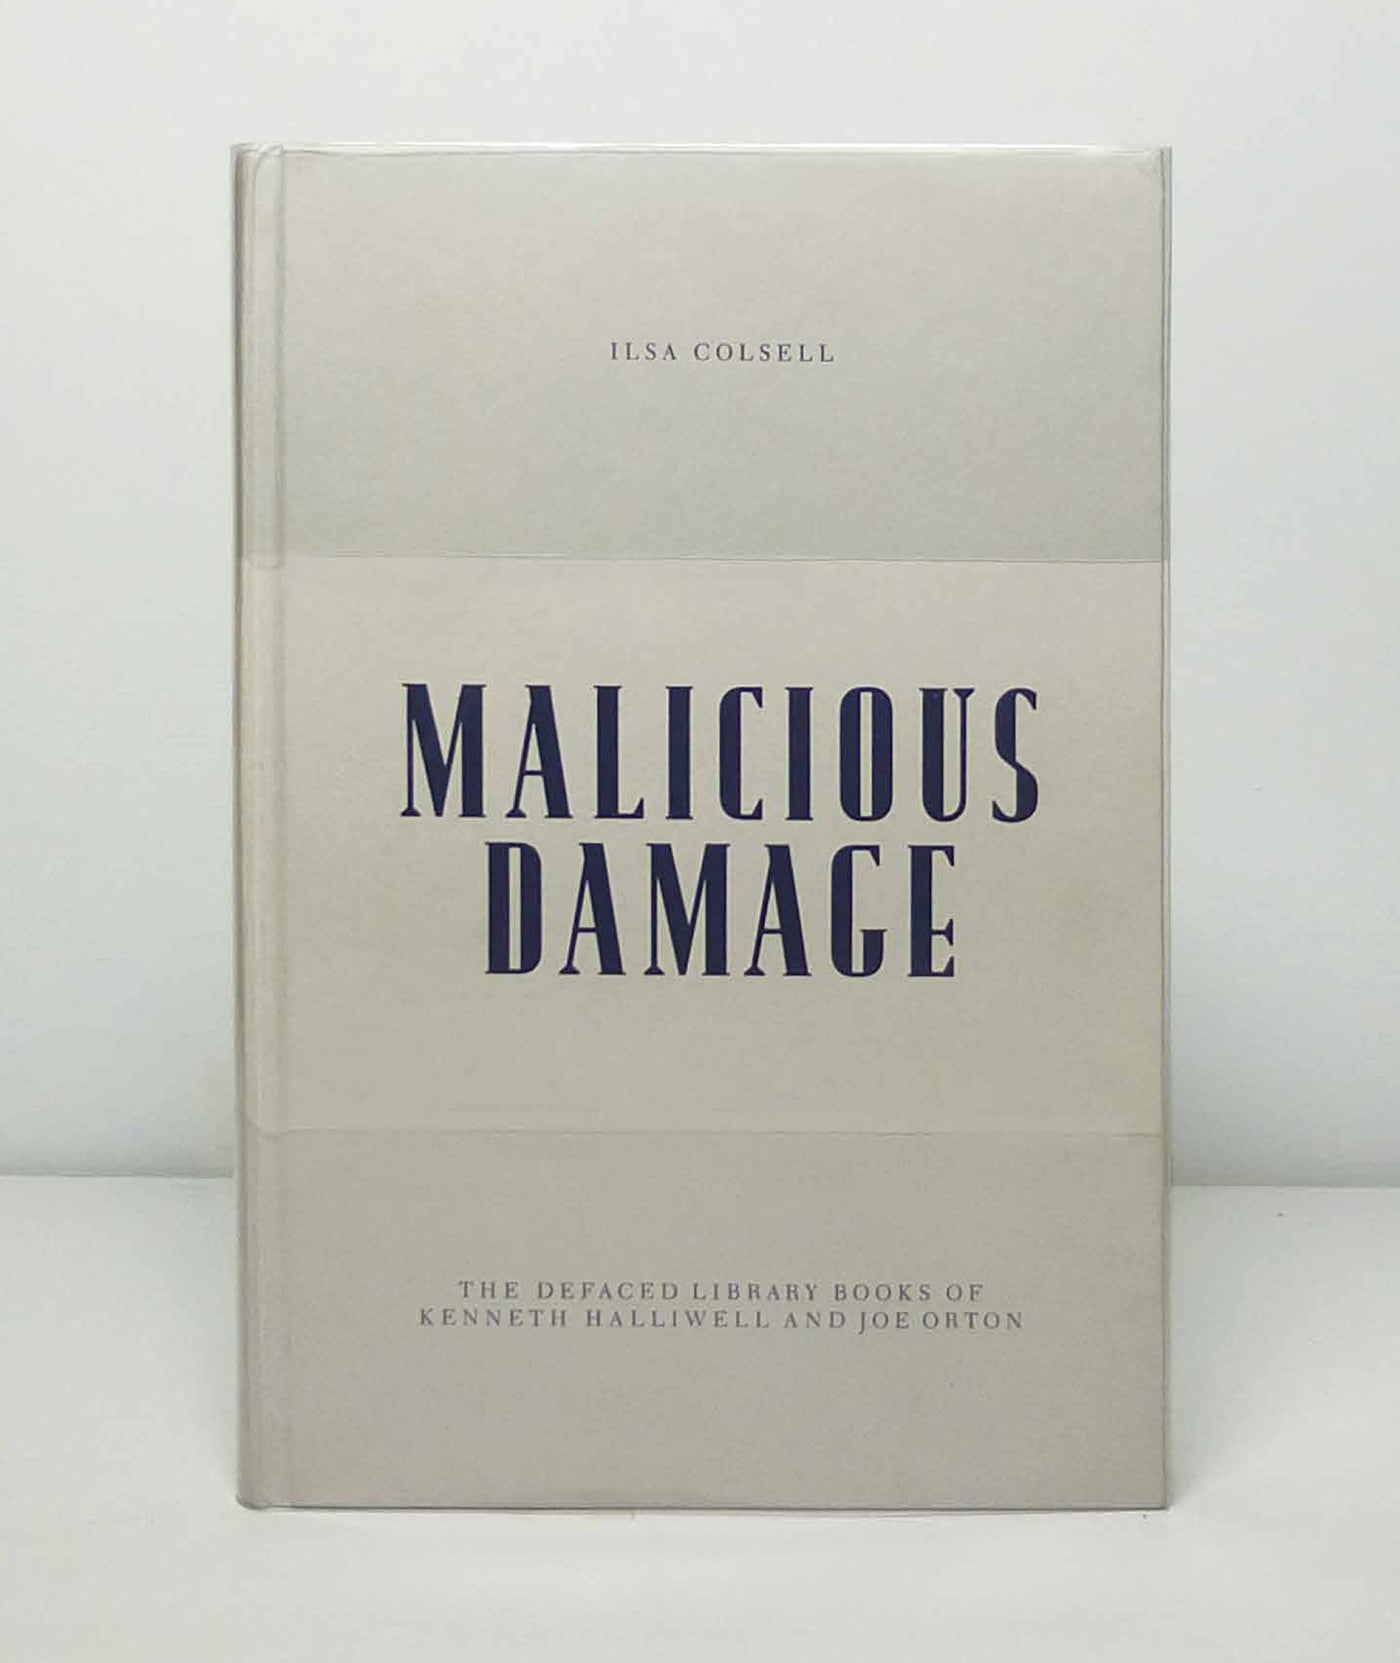 Malicious Damage: The Defaced Library Books of Kenneth Halliwell and Joe Orton by Ilsa Colsell}